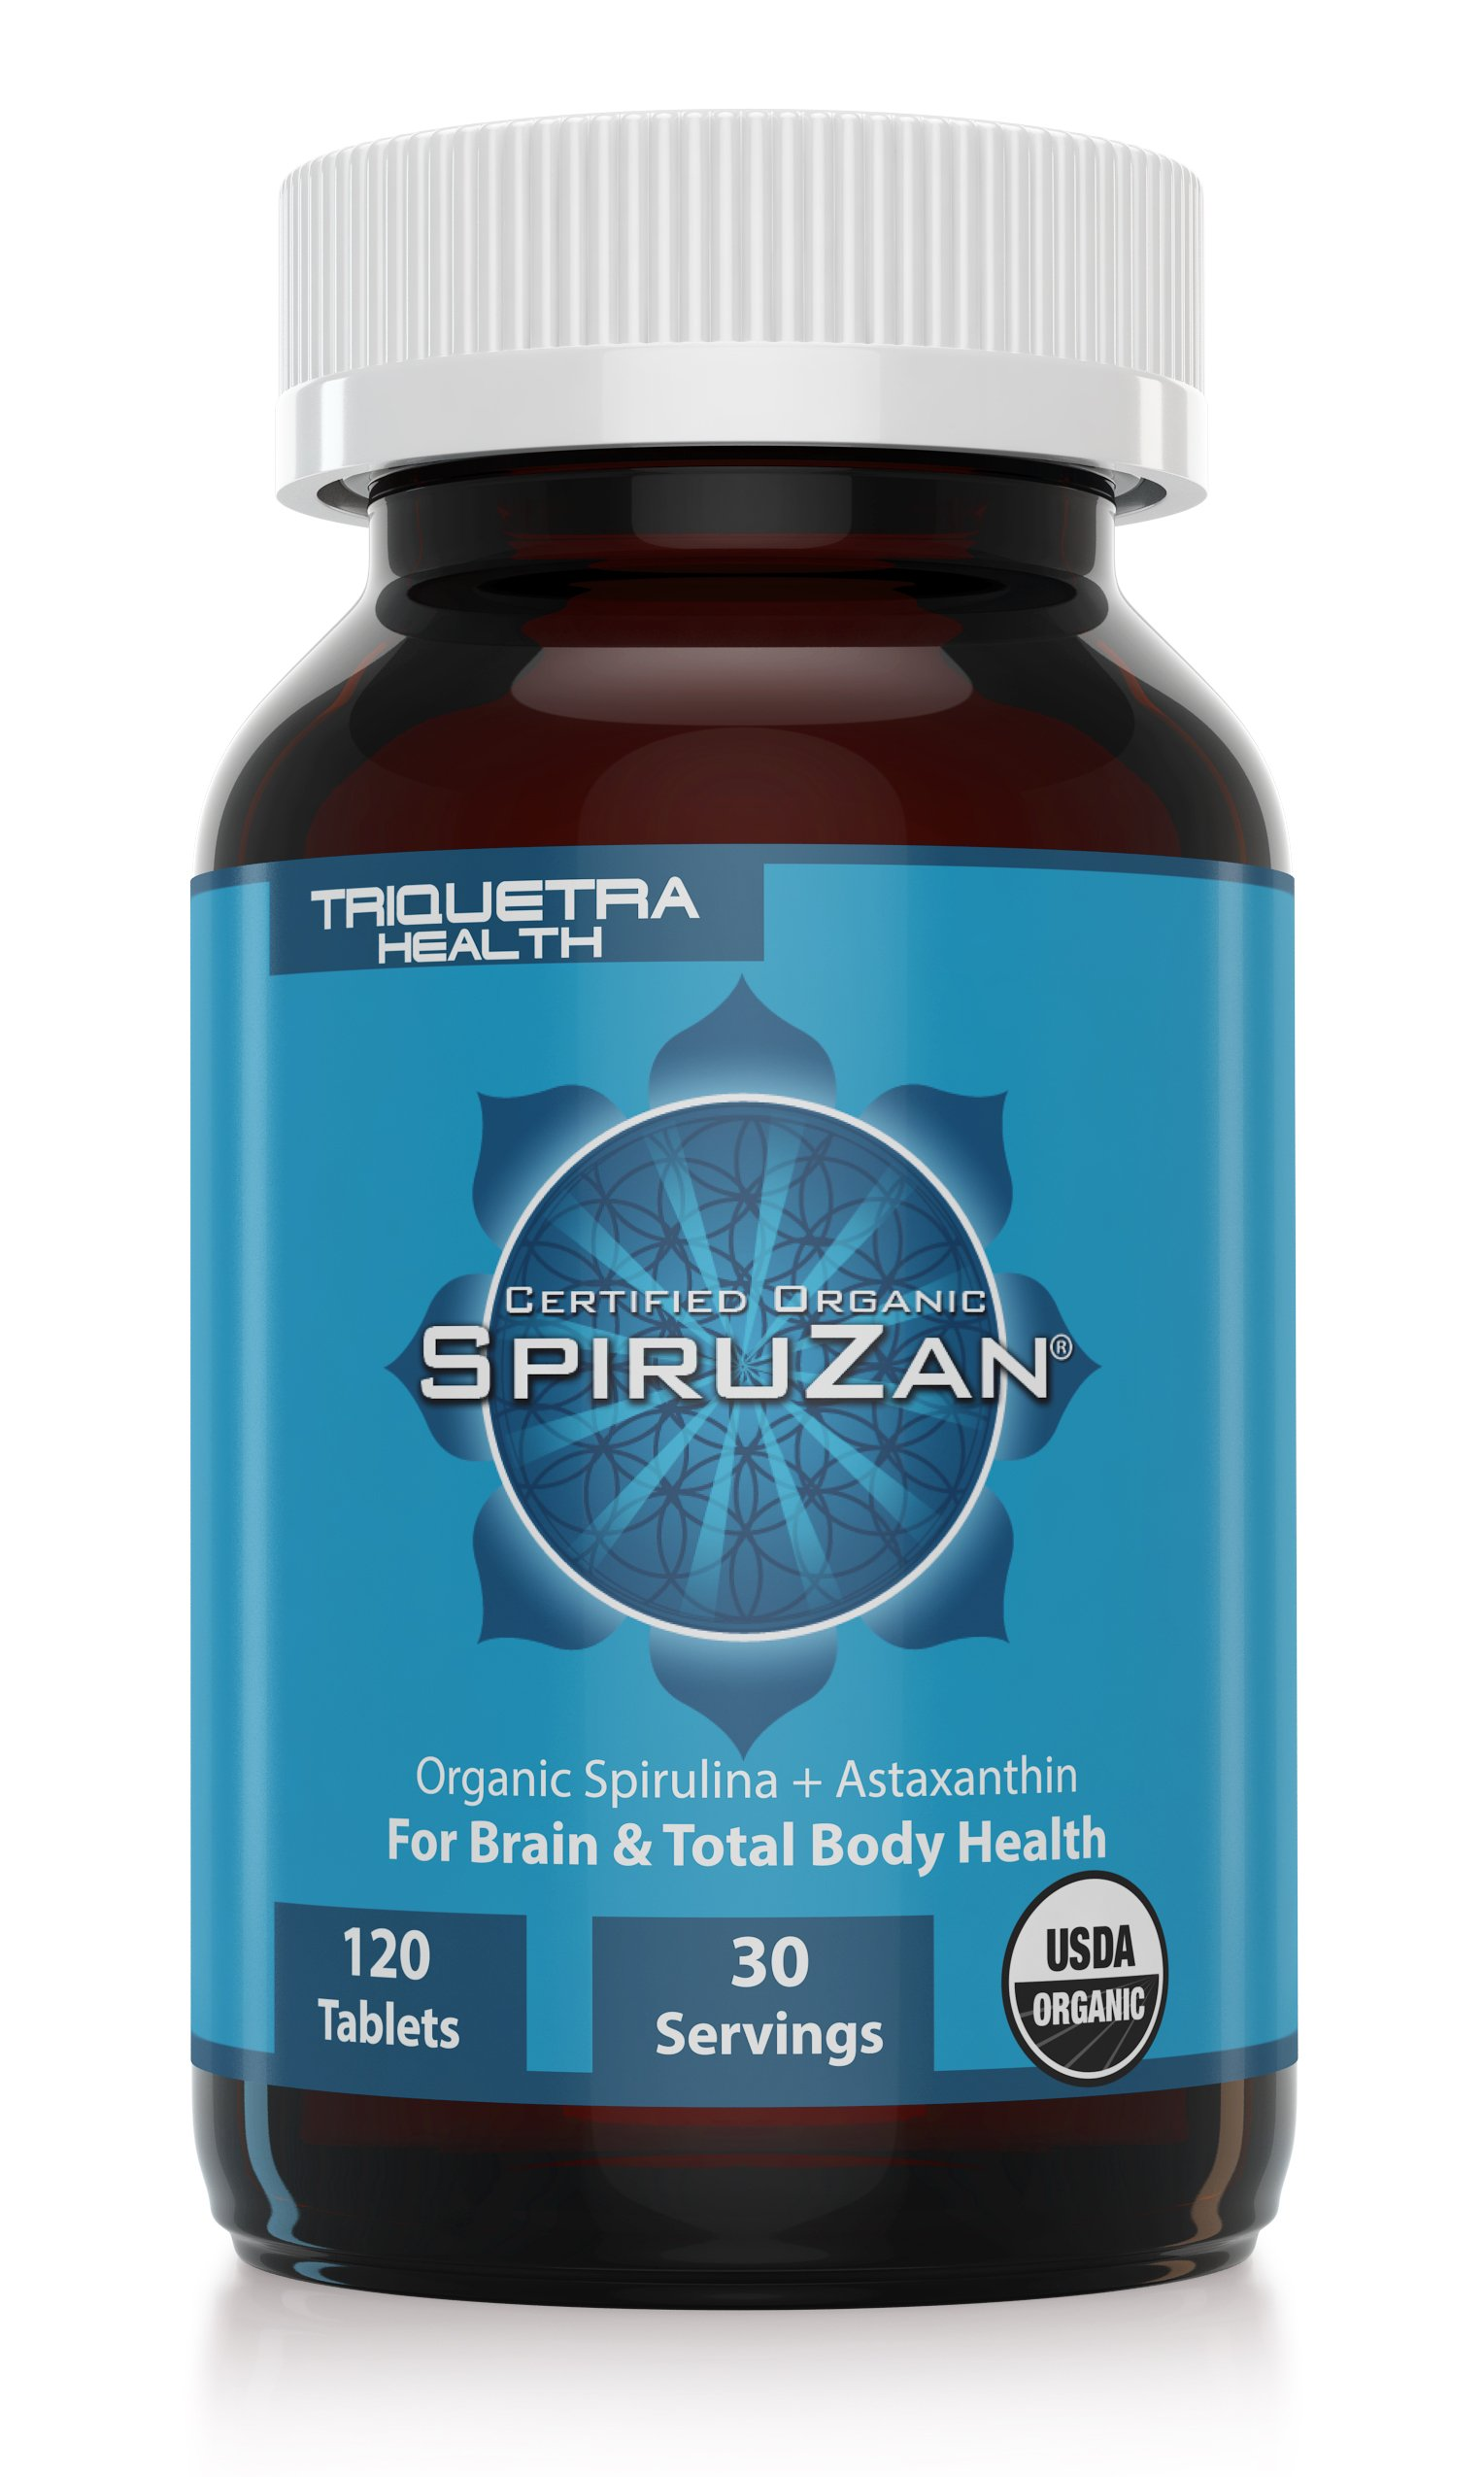 Organic Spirulina and Astaxanthin: Organic Spiruzan -The Purest and Most Bioavailable Source of Spirulina and Astaxanthin - Our Spirulina is Certified Organic by the USDA, Ecocert, OCIA & Natruland